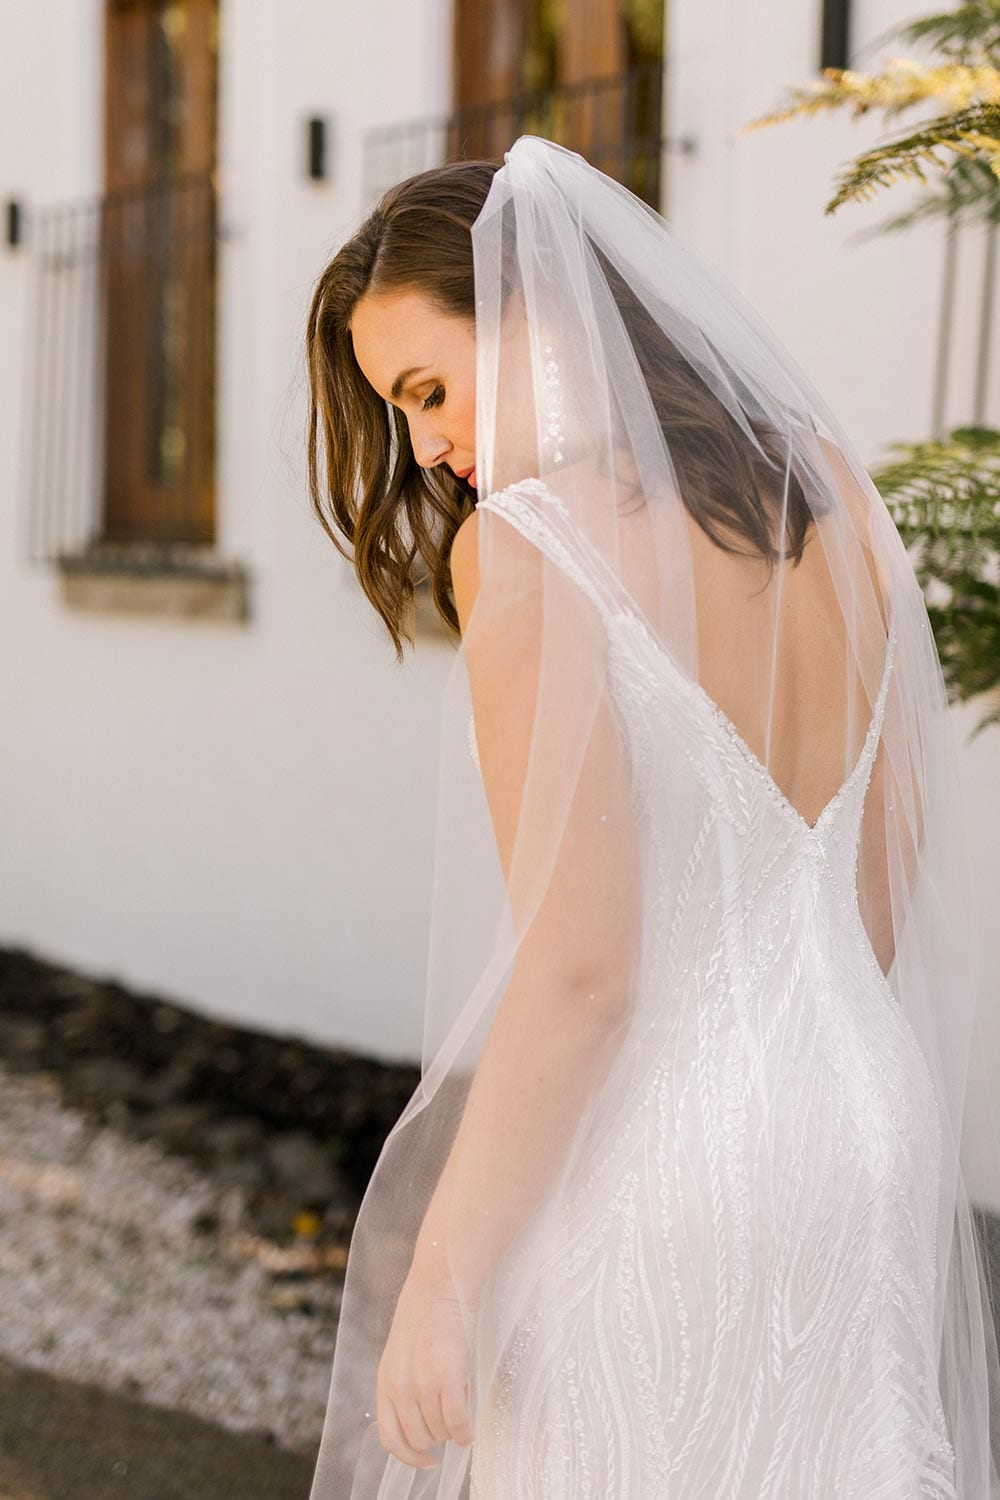 Kiera Wedding Dress from Vinka Design. Beautifully beaded lace wedding dress. Deep V-neckline both front and back is complemented with delicate sheer lace shoulder detail & structured bodice. Portrait showing top of dress from the back. Photographed at Tui Hills.